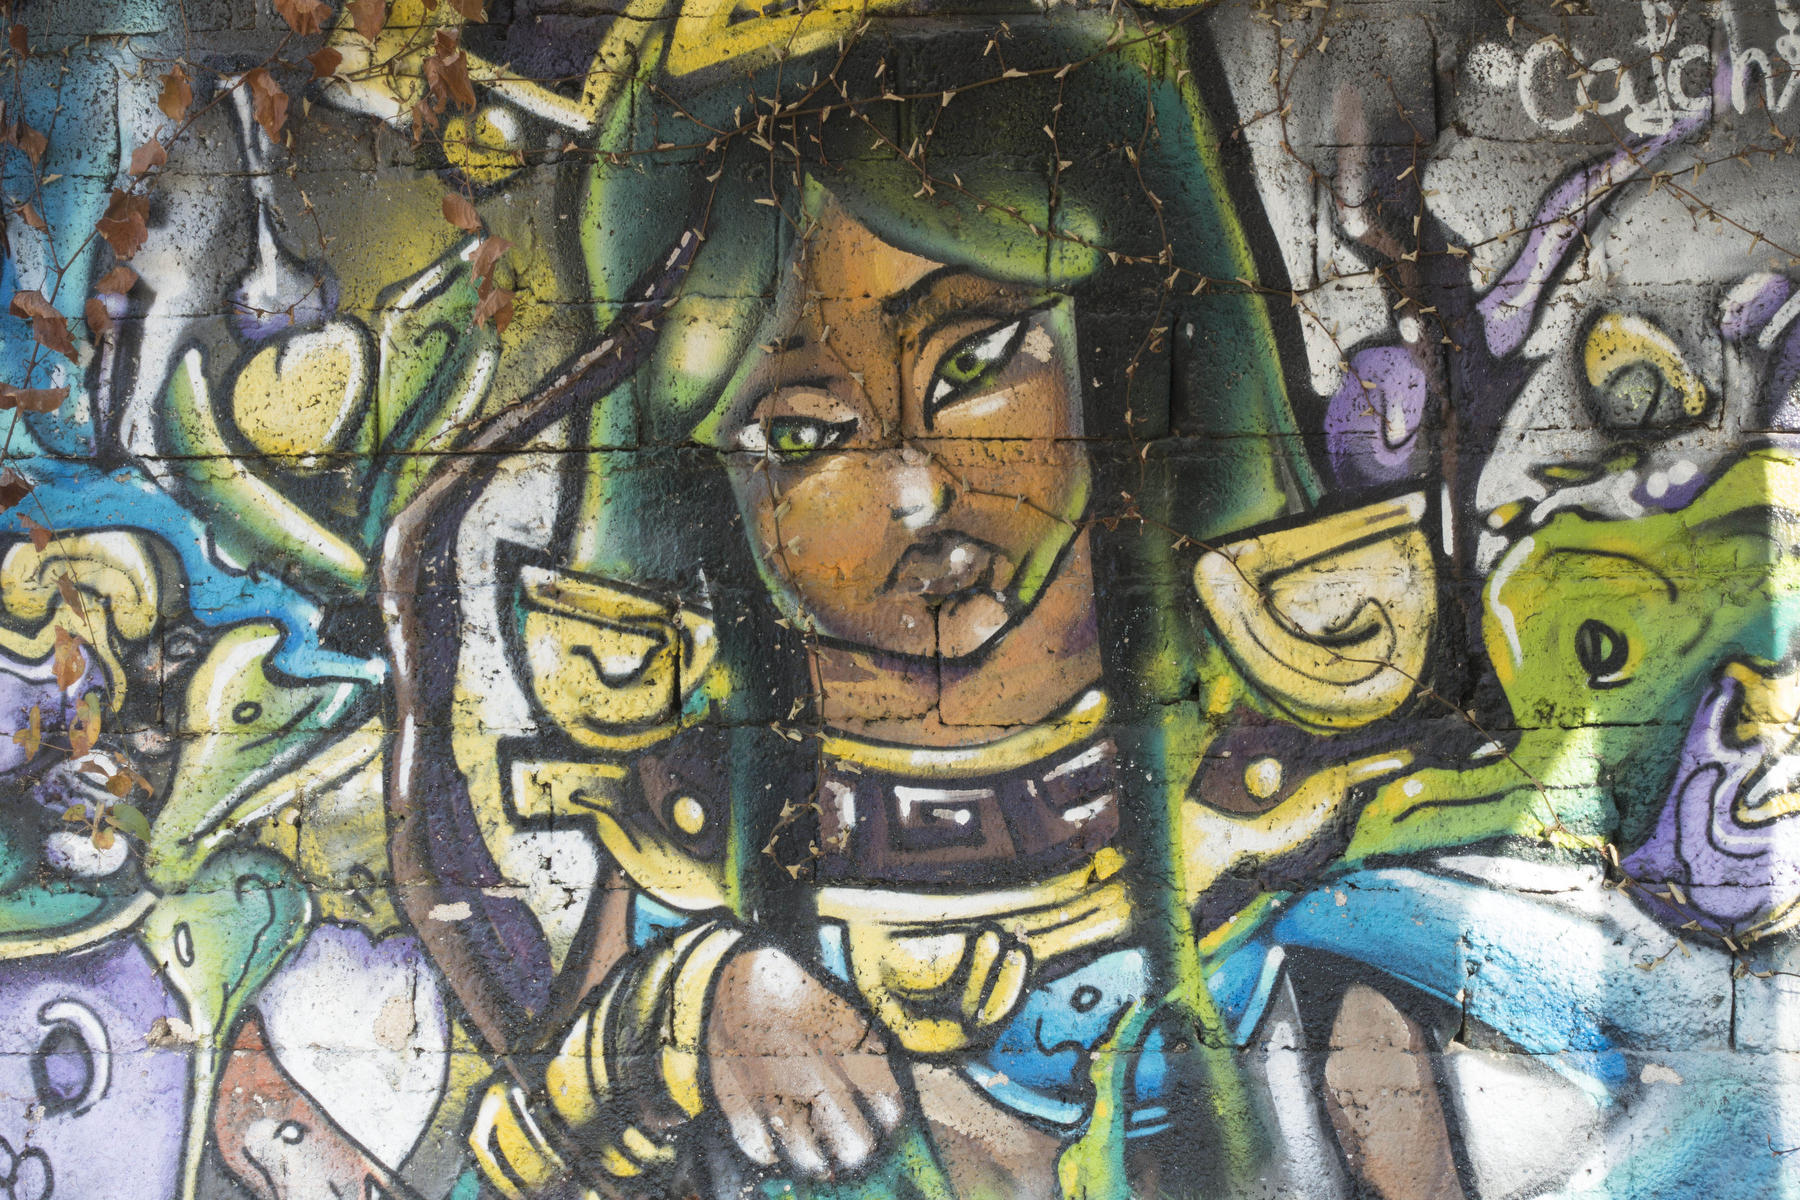 Green-eyed Mayan goddess on a park wall : PUERTO VALLARTA - Wall Art & Bicycle Tour : Viviane Moos |  Documentary Photographer